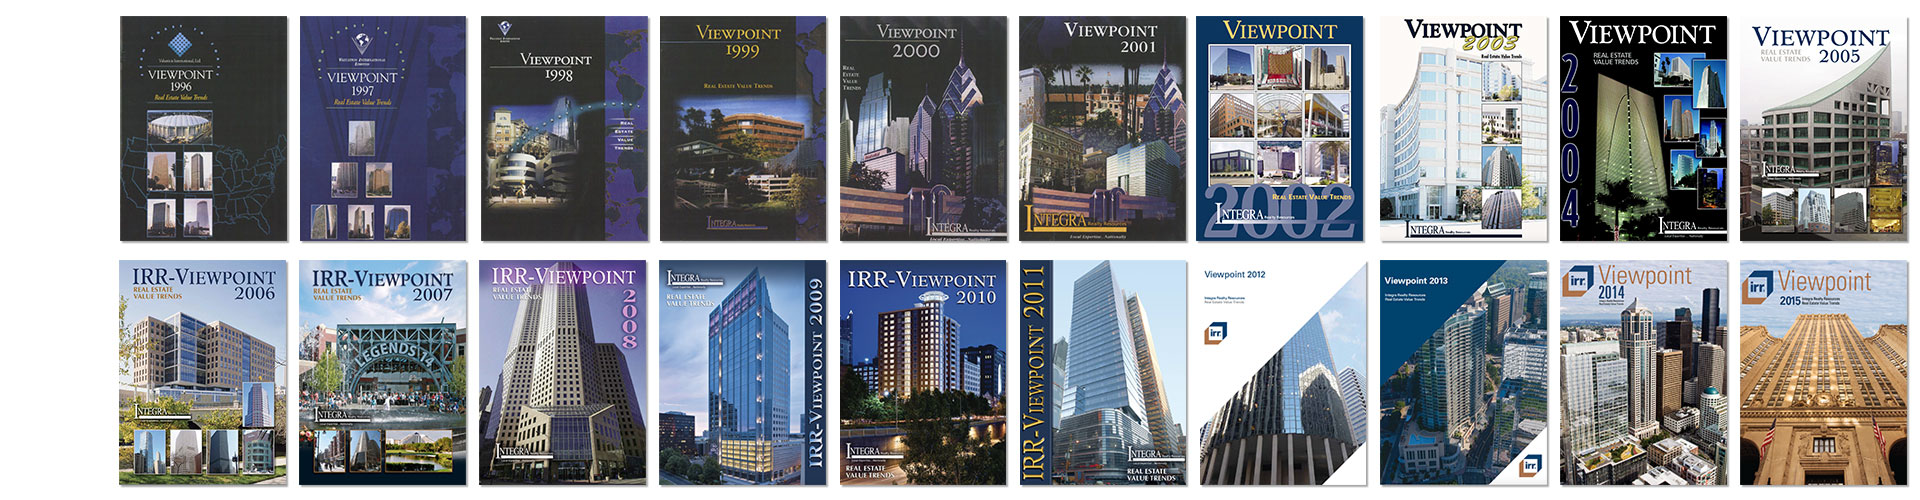 Since 1995, Viewpoint has been a CRE Industry Must-Read